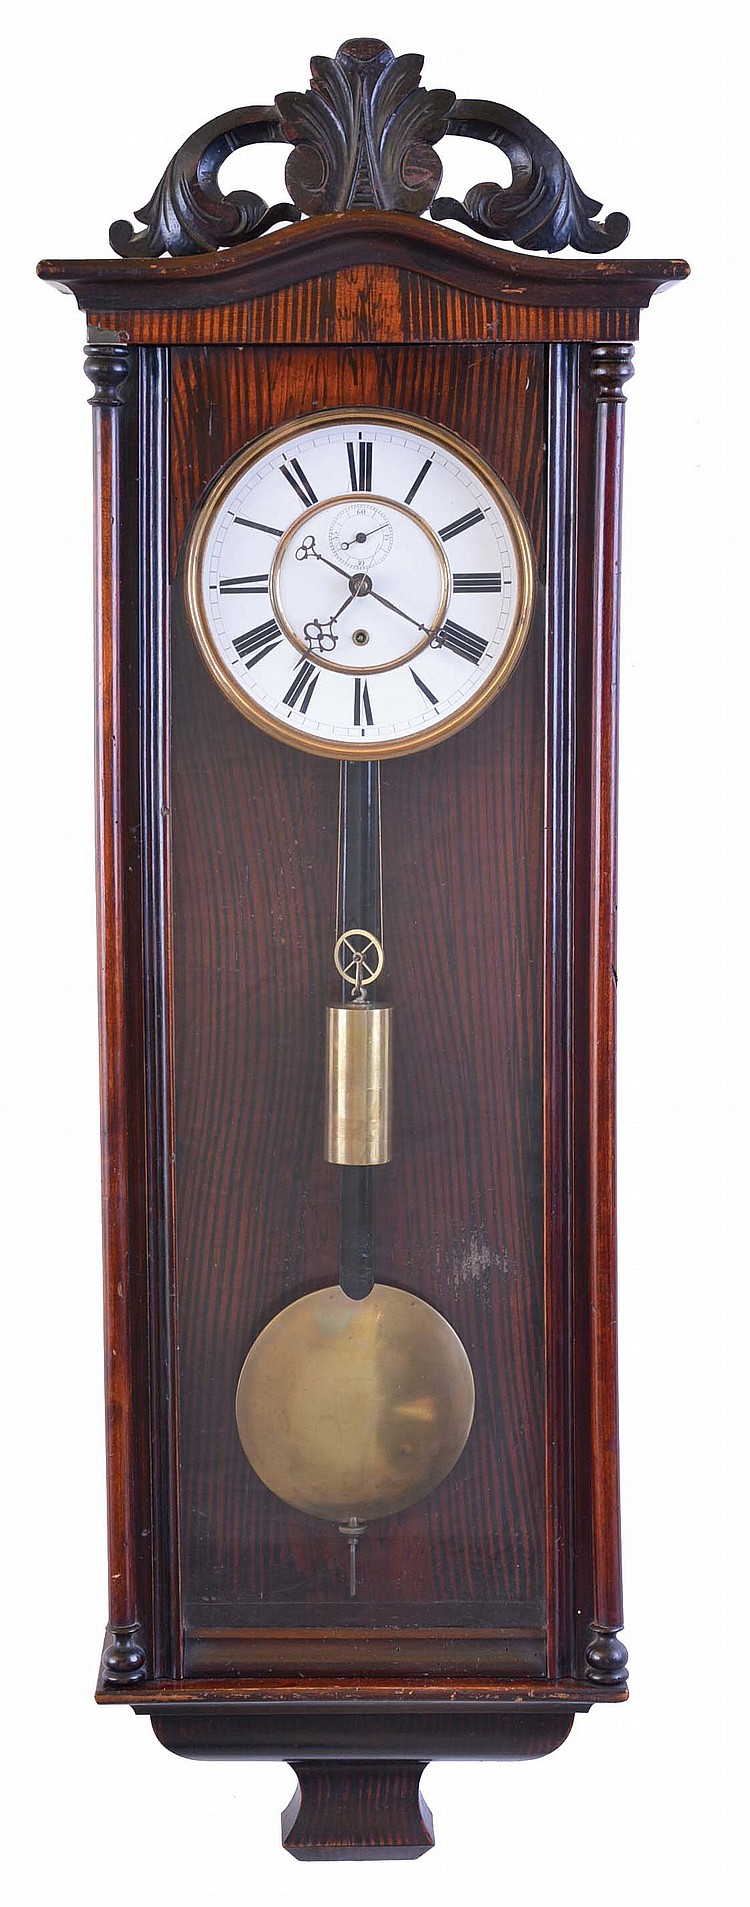 Germany, unsigned Vienna regulator style wall clock, 8 day, time only, weight driven movement in a mahogany case with white enamel two part dial, serial no. 44509